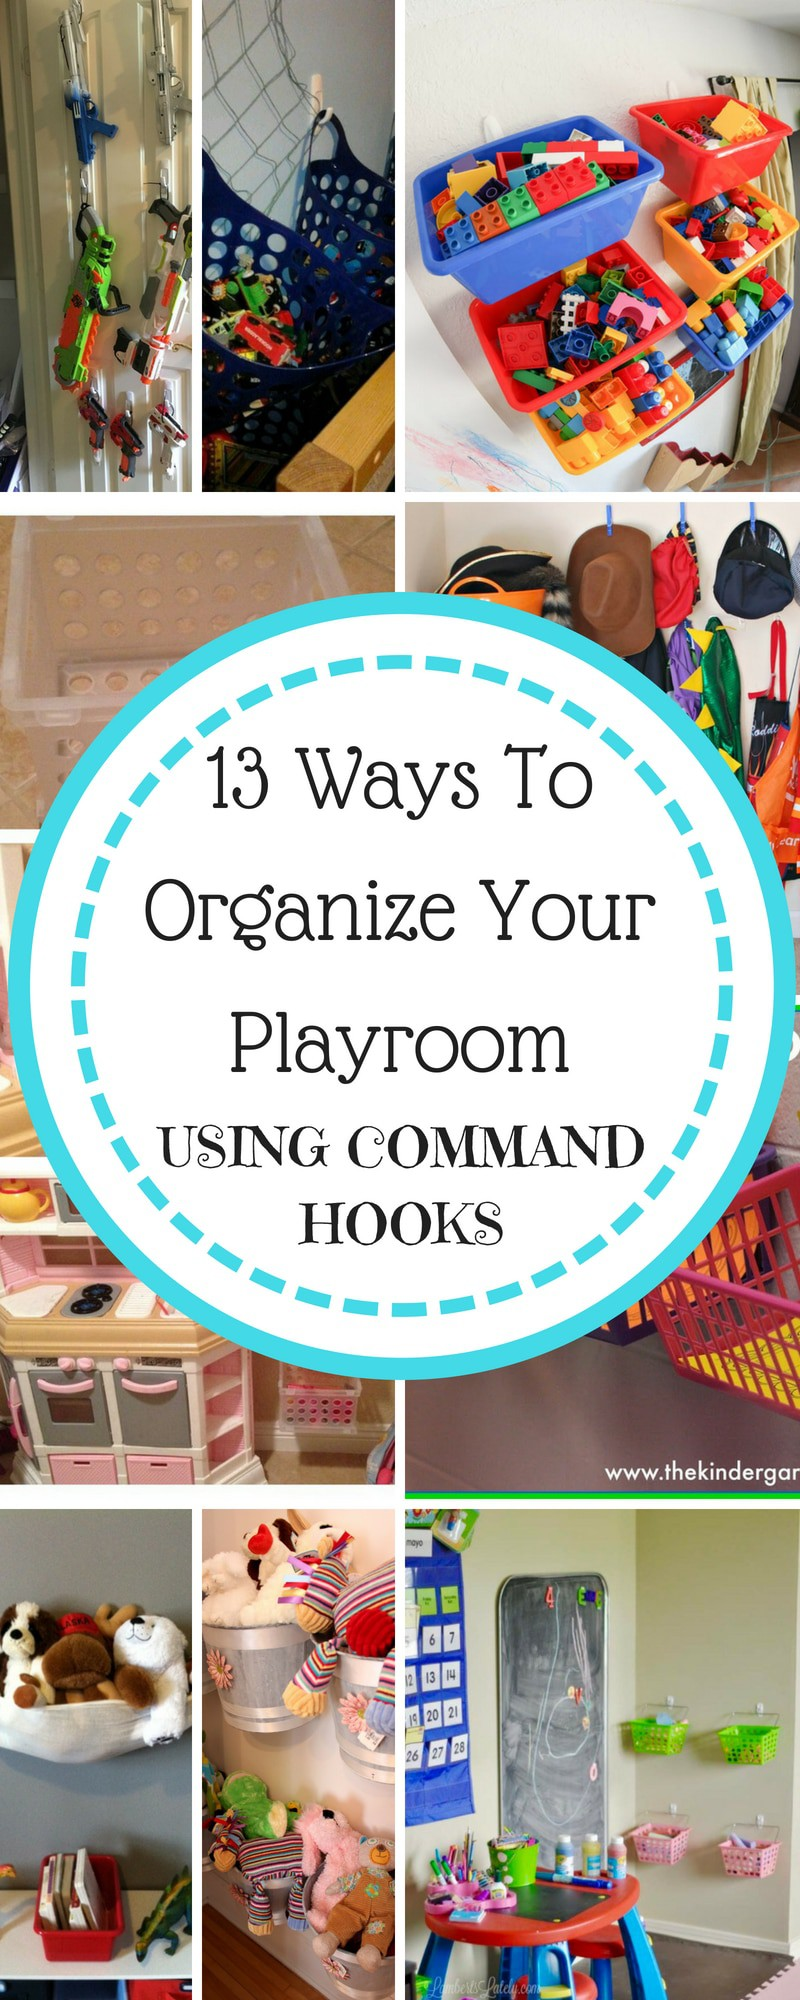 organize with command hooks